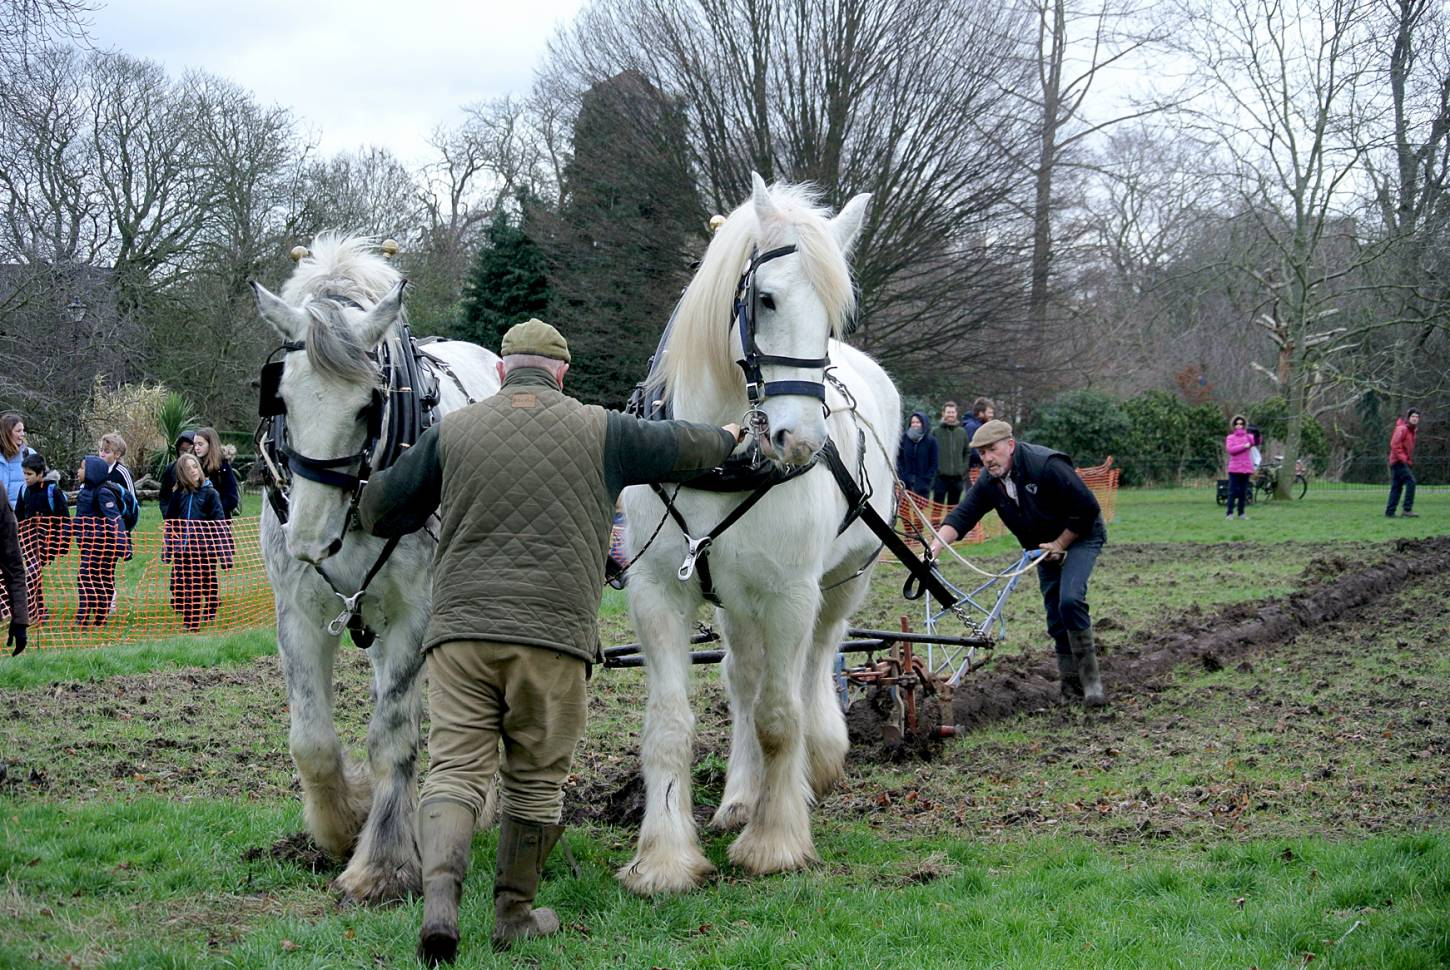 Shire horses, Heath and Nobby with ploughman Tom Nixon from <a href='http://www.operationcentaur.com/' target='_blank'>Operation Centaur</a> come to plough the <a href='https://twitter.com/ruskinparkse5?lang=en' target='_blank'>Ruskin Park</a> wheat patch. Image: Marie Cullen - 12:19pm&nbsp;9<sup>th</sup>&nbsp;Feb.&nbsp;'18